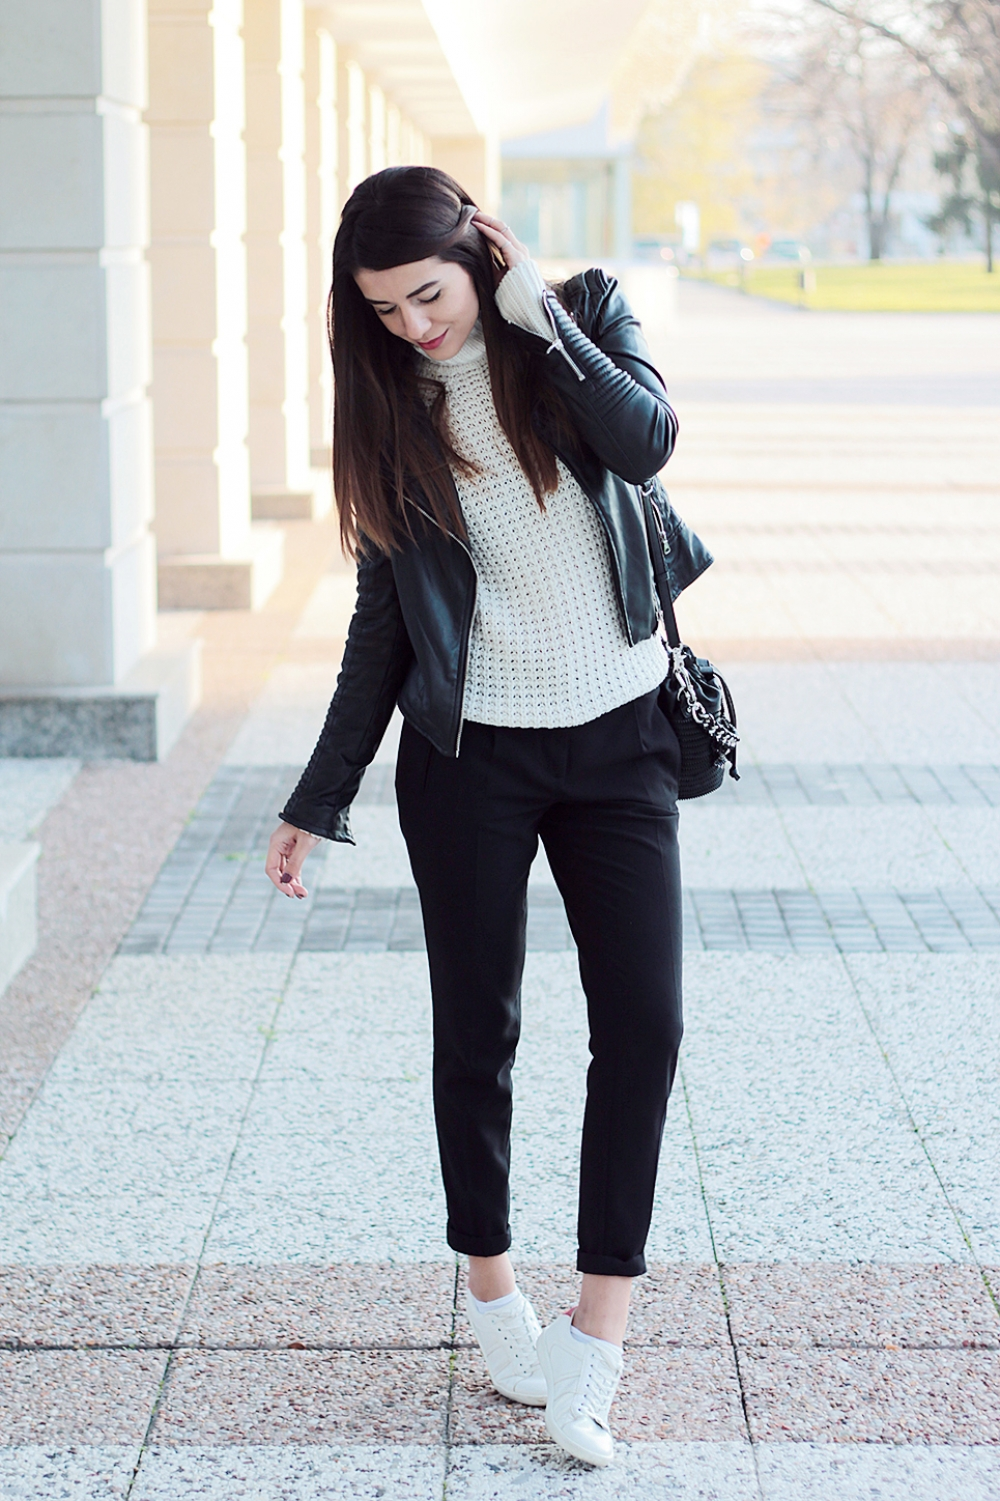 Formal pants + white sneakers